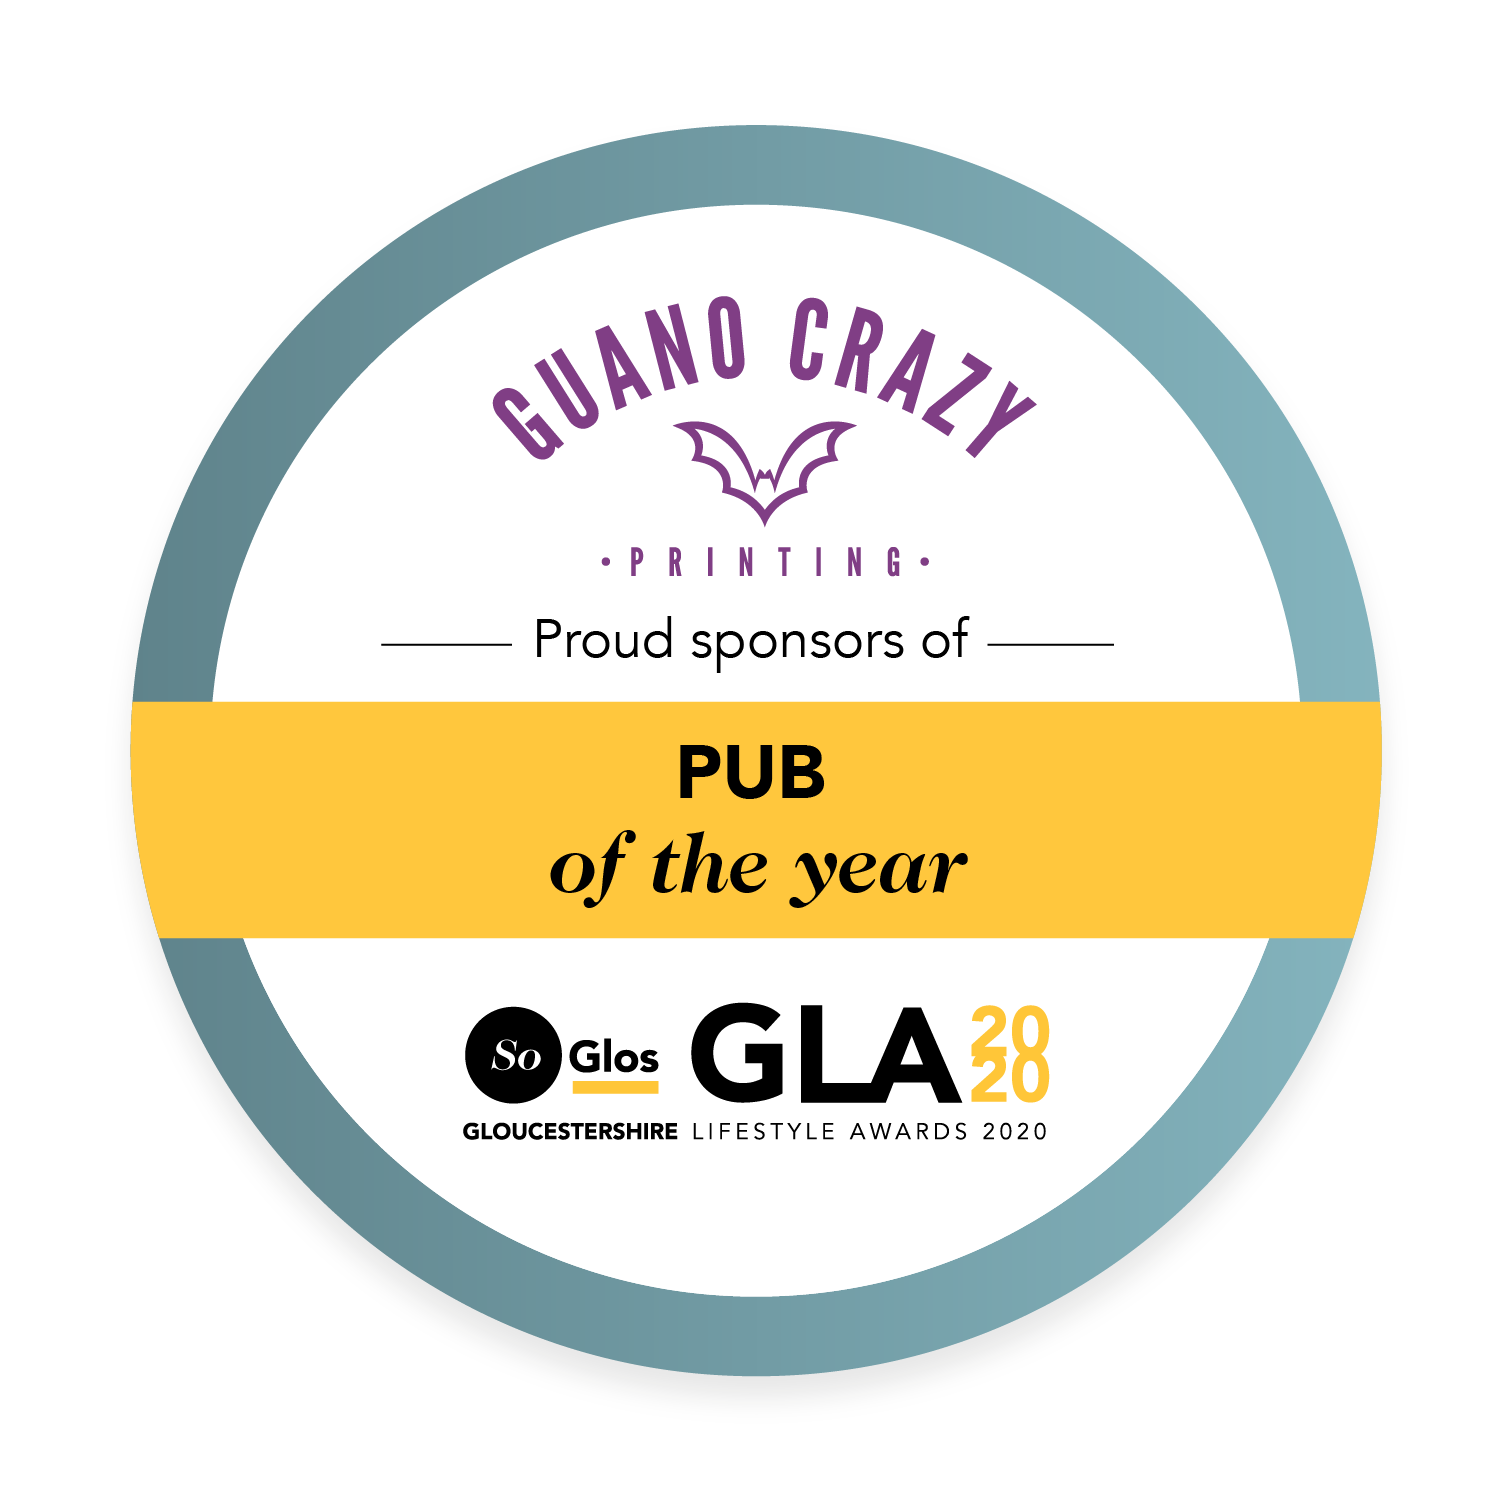 Pub of the Year